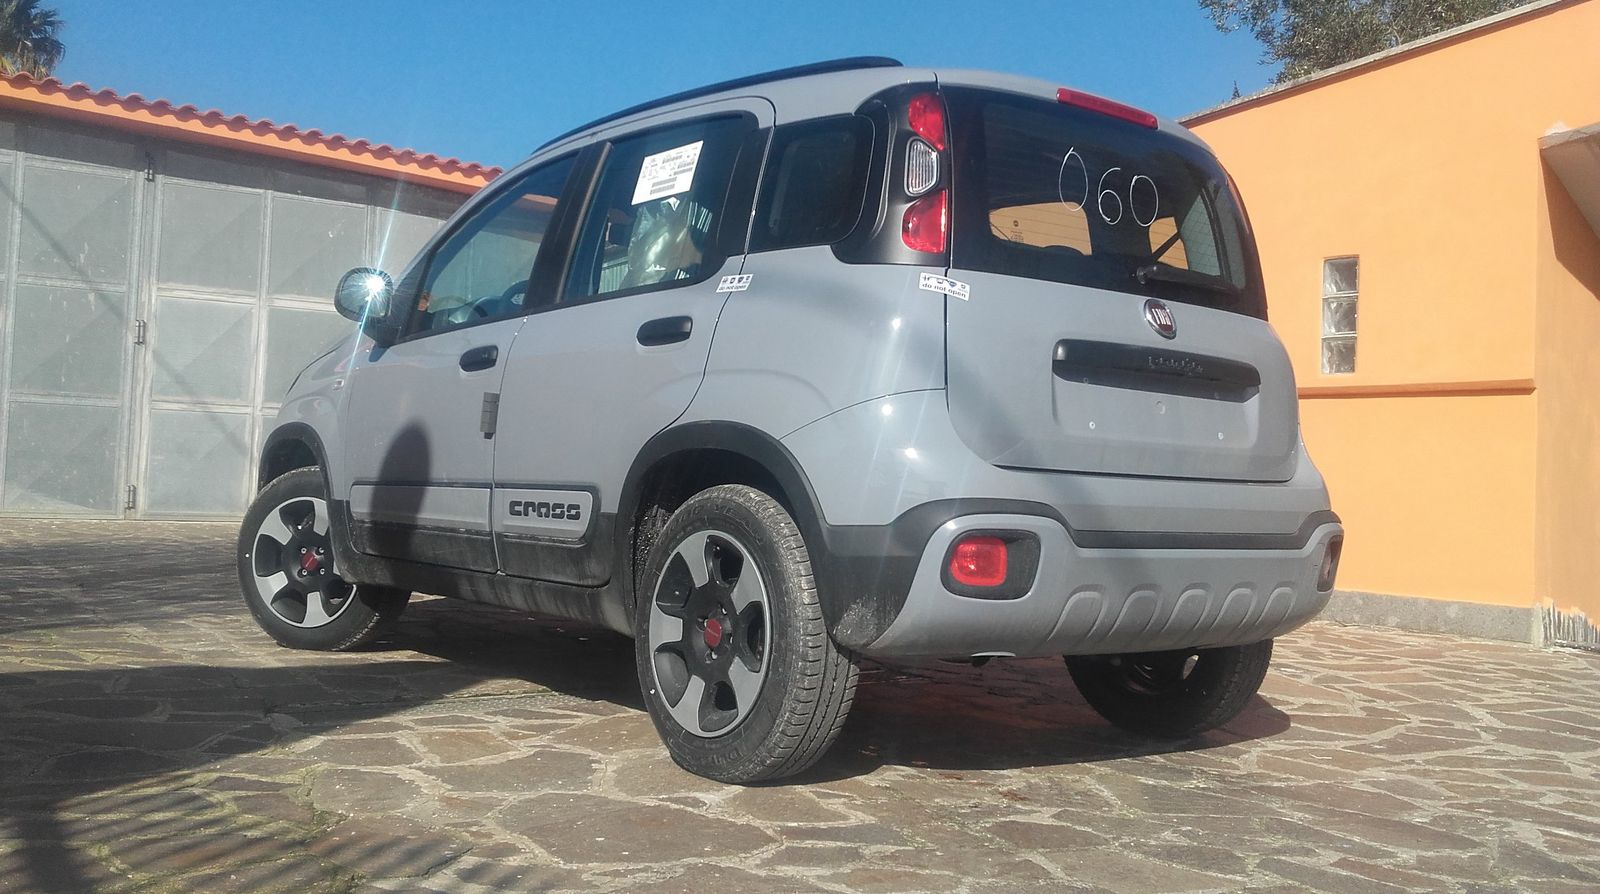 Fiat Panda City Cross Euro 6D S&S, a km. 0, italiana. EURO 12.100